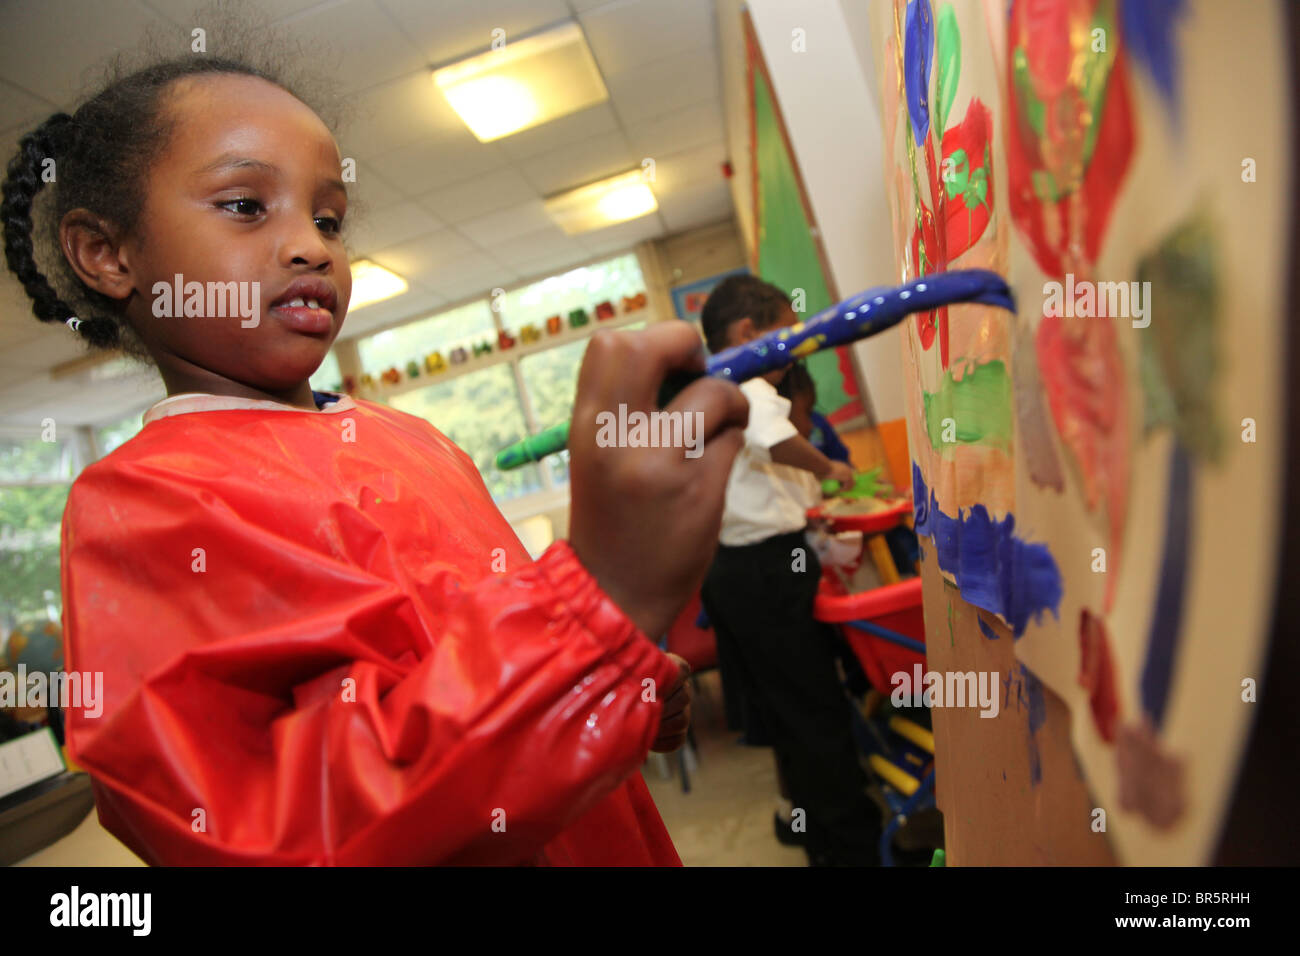 Girl painting at school. She is 5 years old, year 1 student - Stock Image